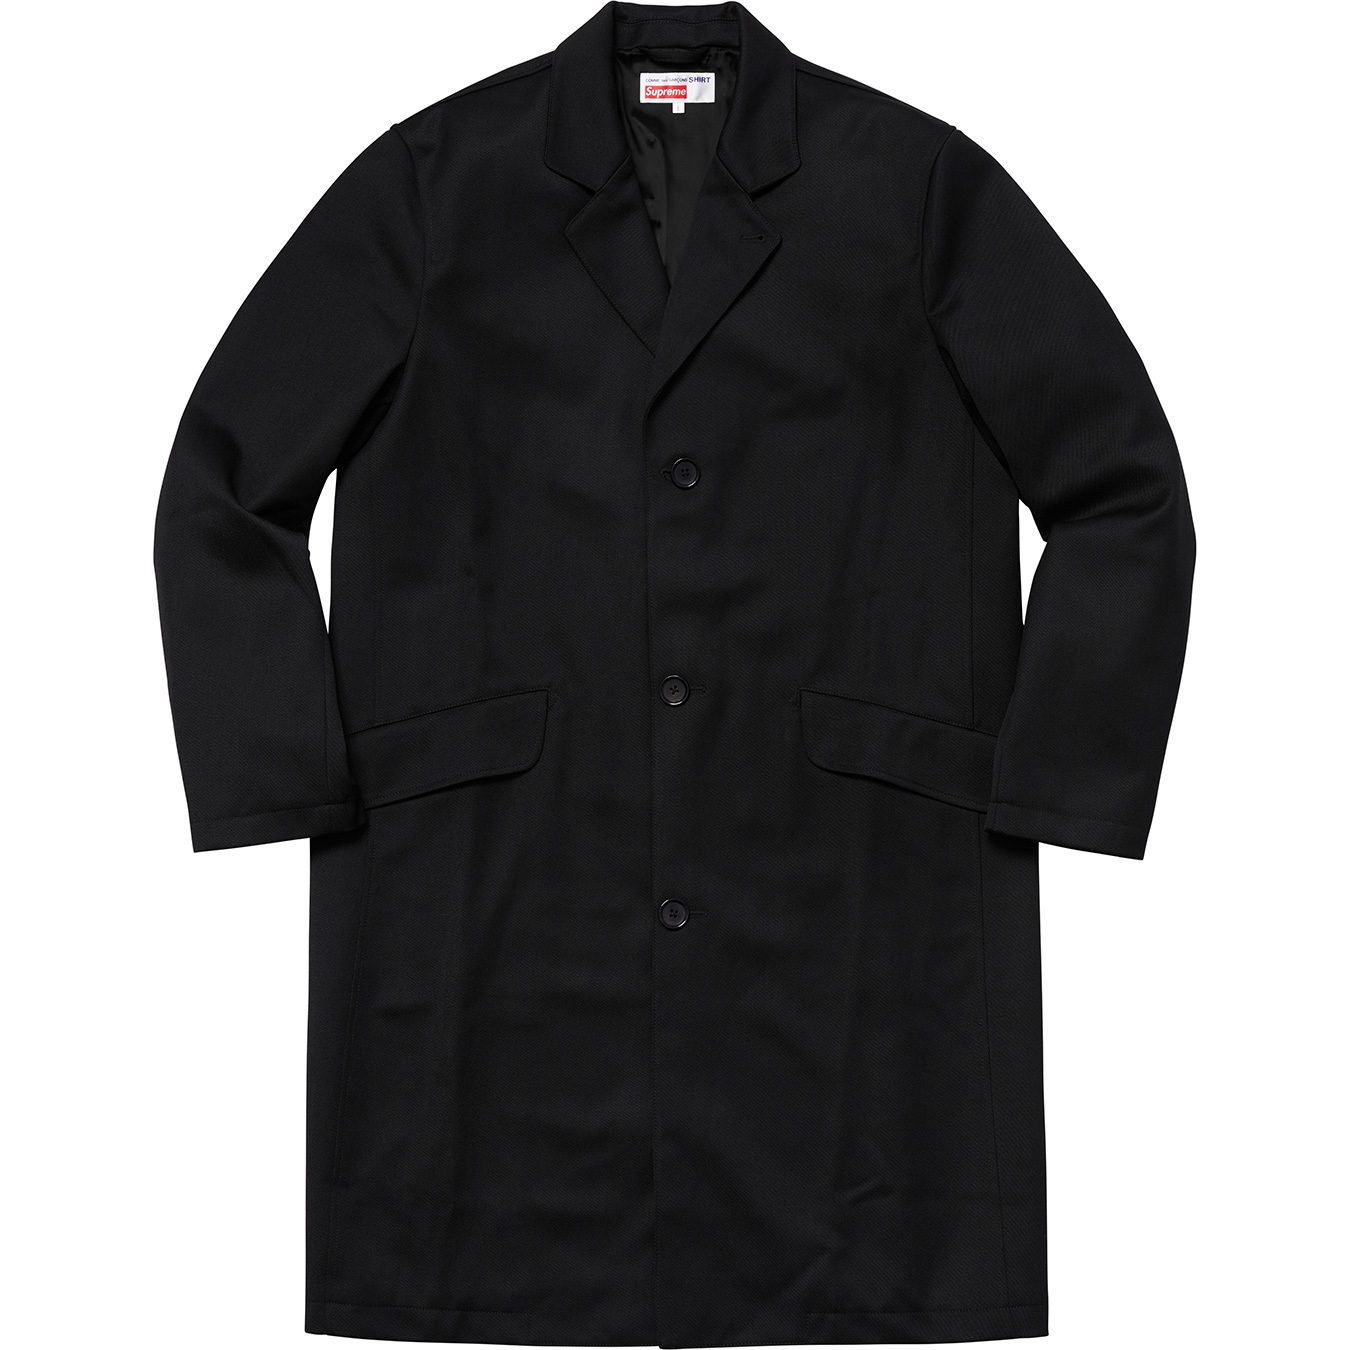 supreme-comme-des-garcons-shirt-wool-blend-overcoat-18aw-collaboration-release-20180915-week4